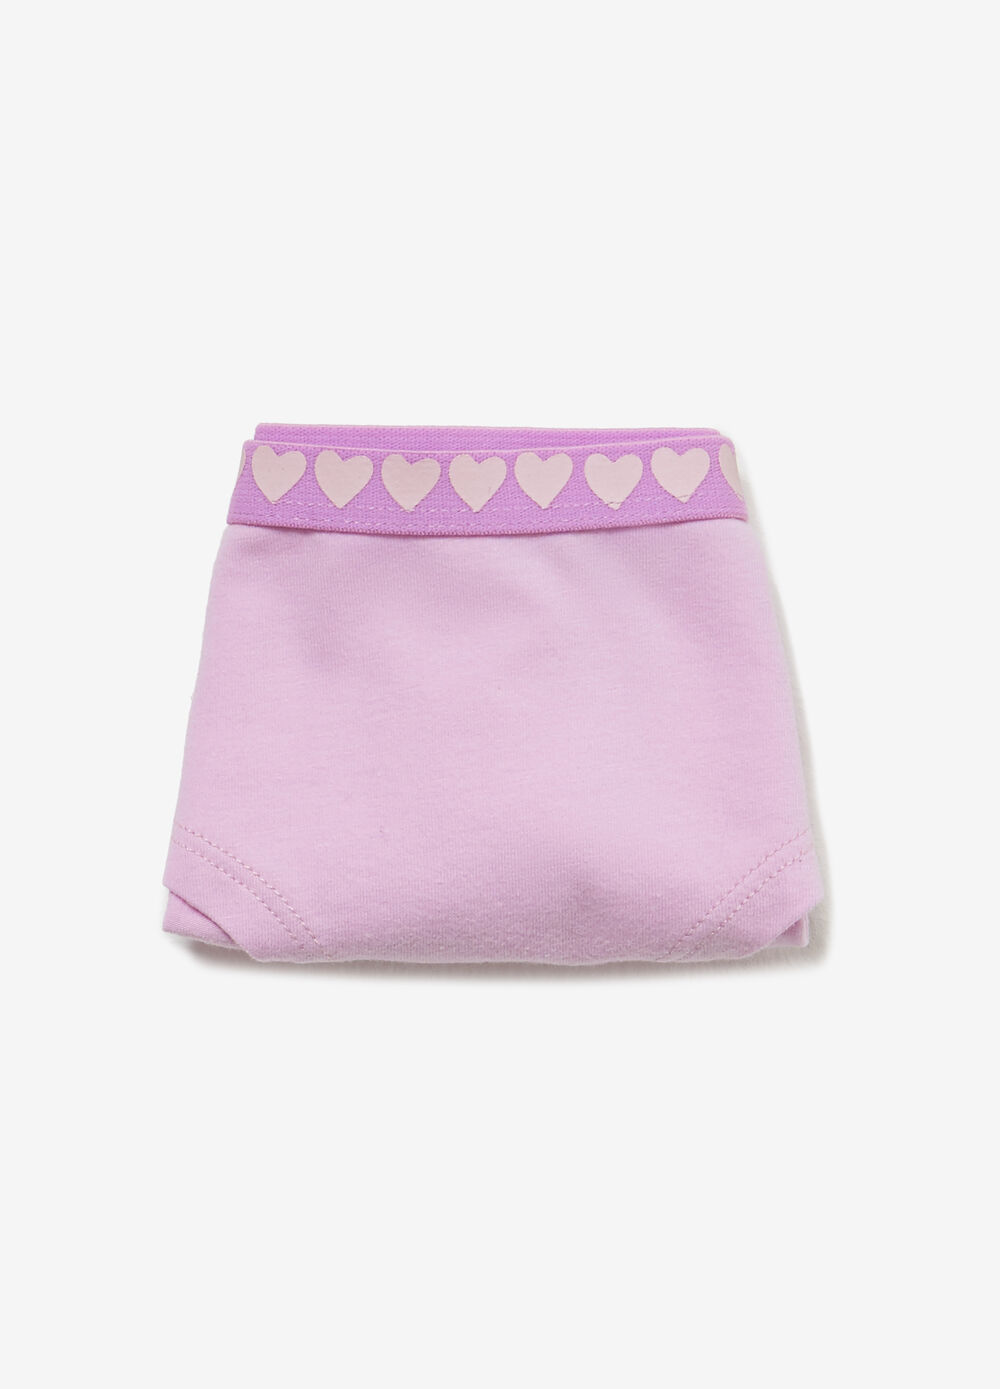 Stretch cotton French knickers with hearts print